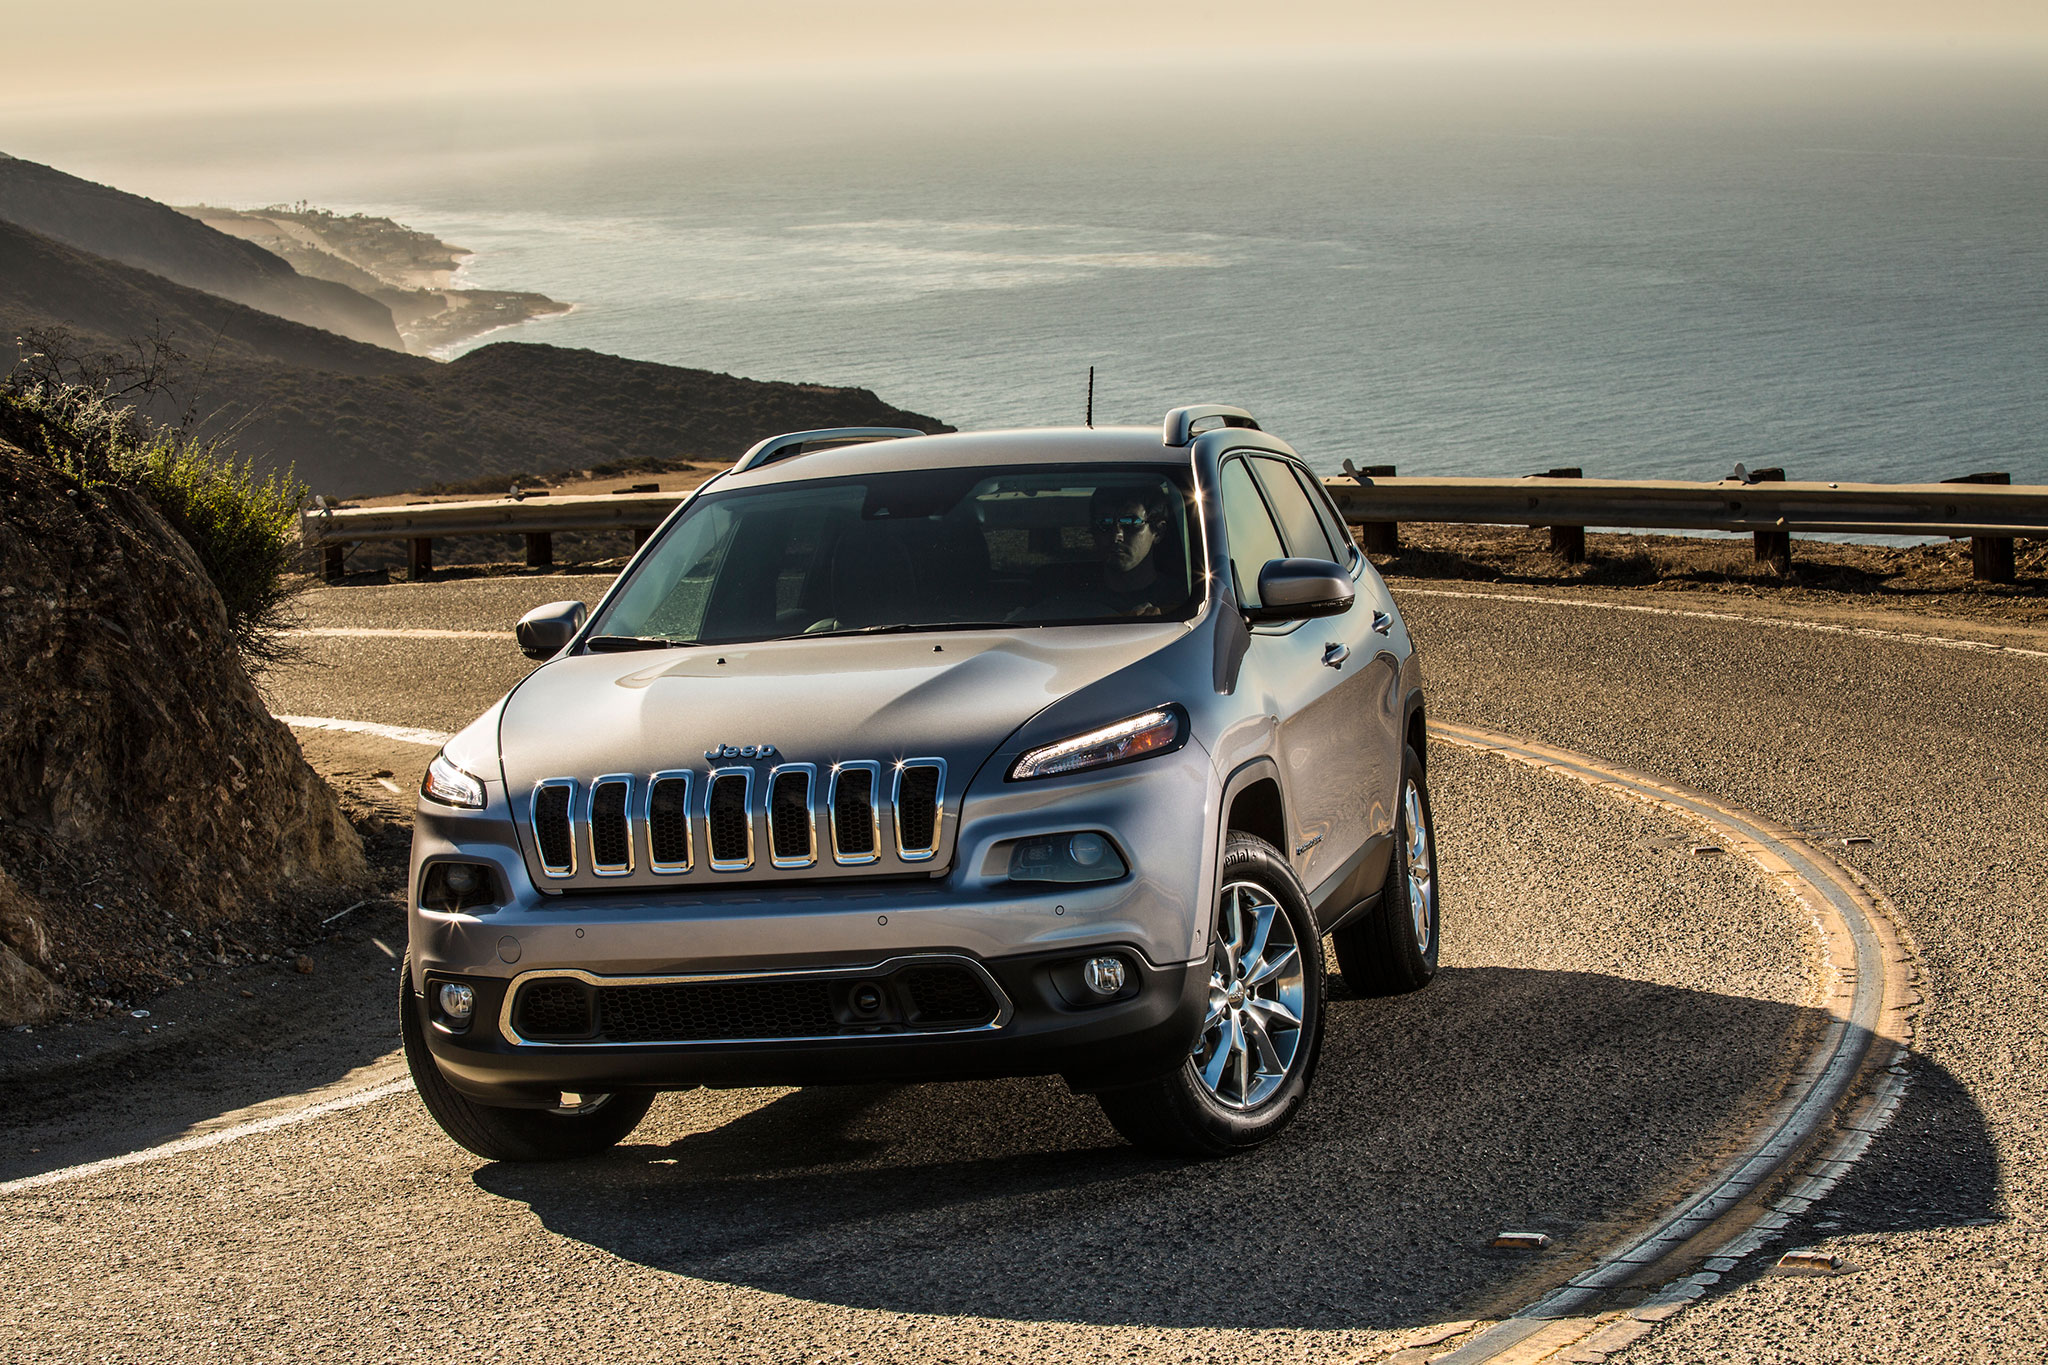 Report 2017 Jeep Cherokee Transmission Problem Causes Delay Laude 4x4